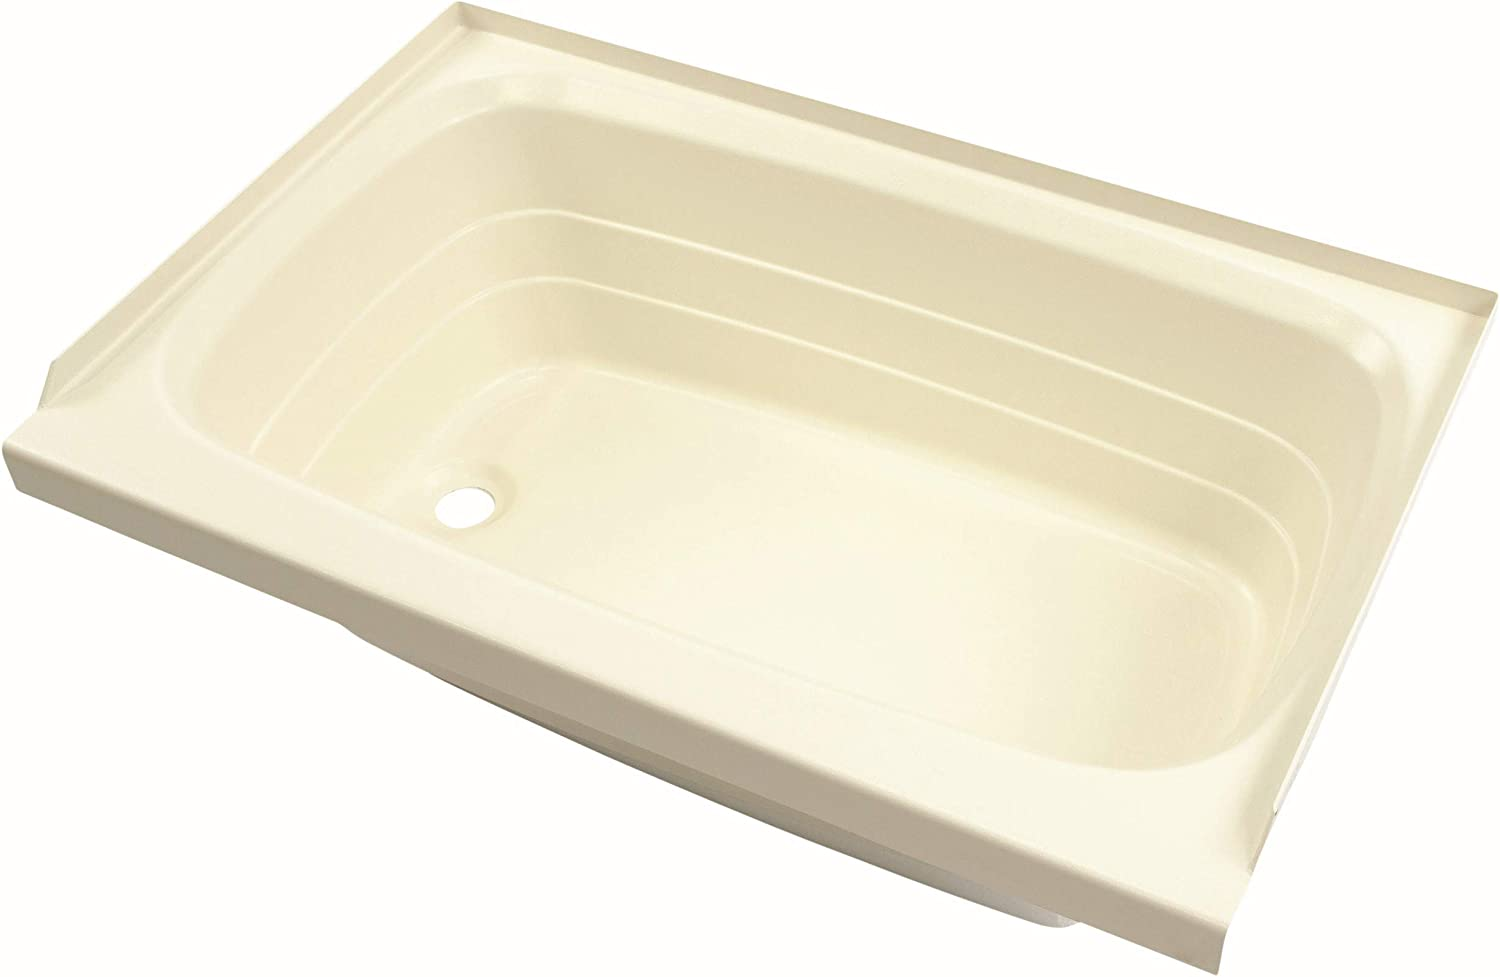 Lippert 209372 Better Bath RV Bath Tub 24